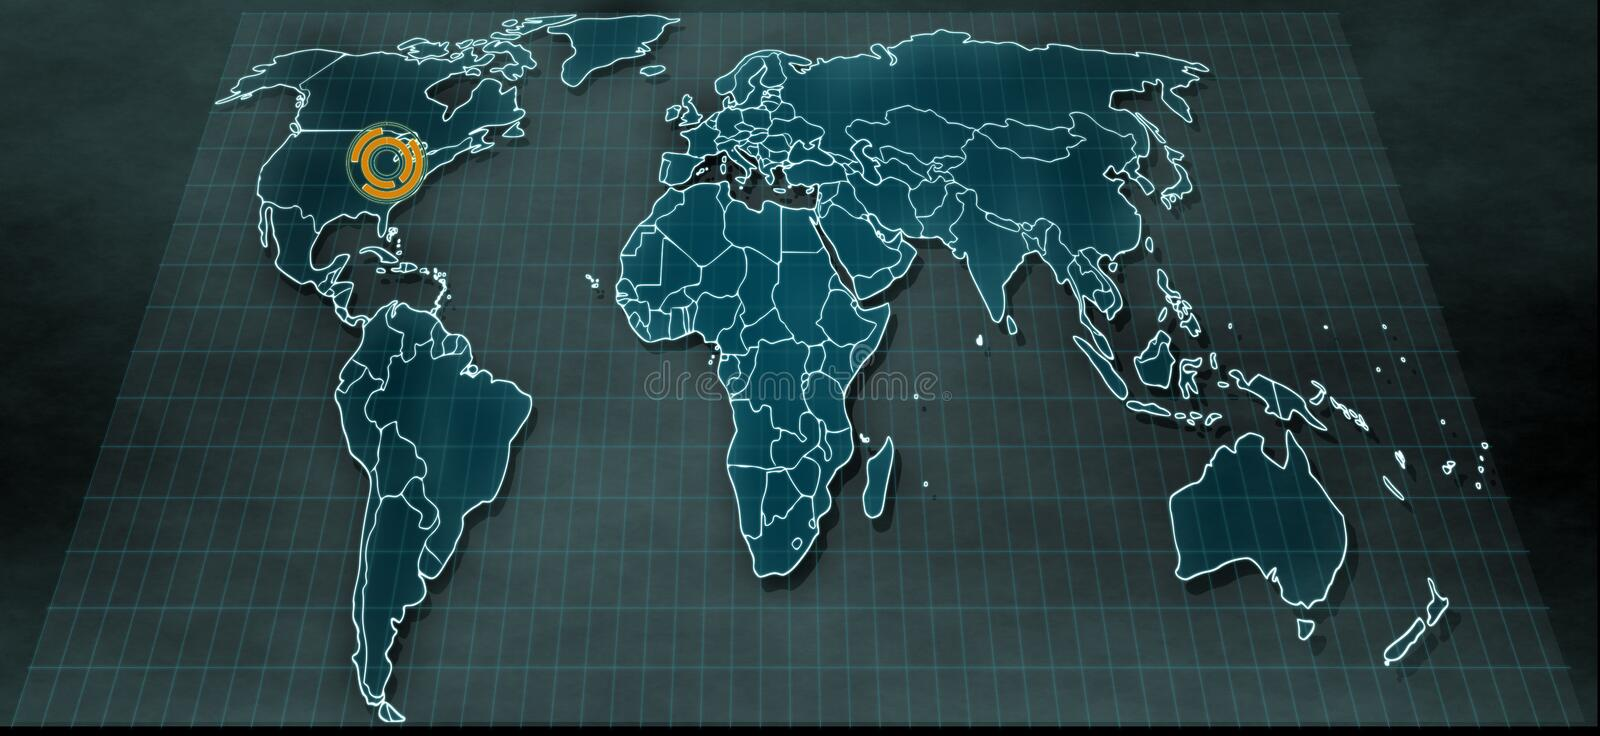 Futuristic world map in digital display with highlight on Chicago royalty free stock images